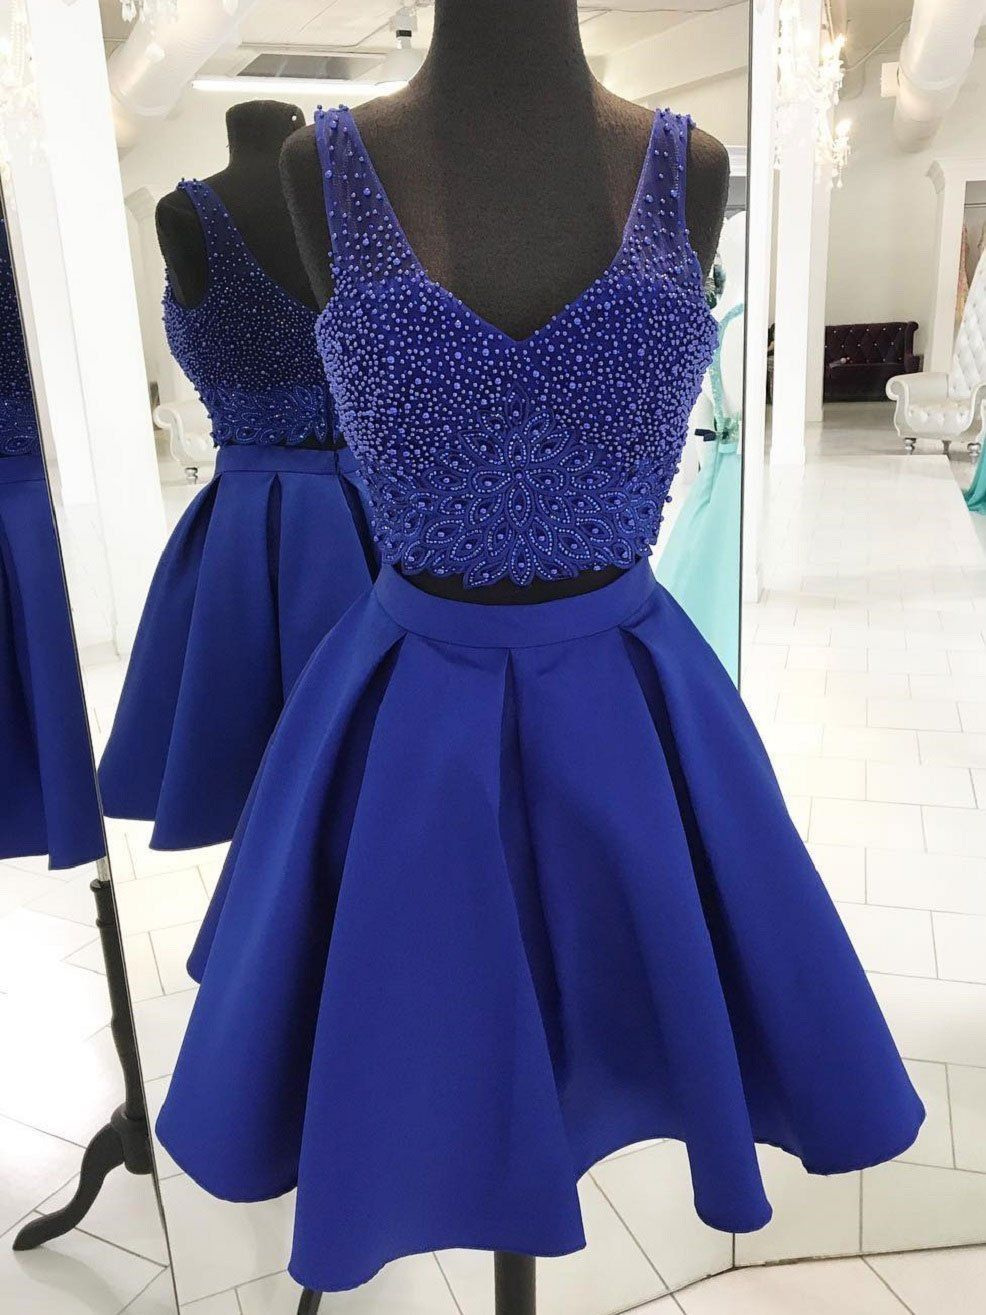 V neck beaded royal blue two piece homecoming dresses cm in